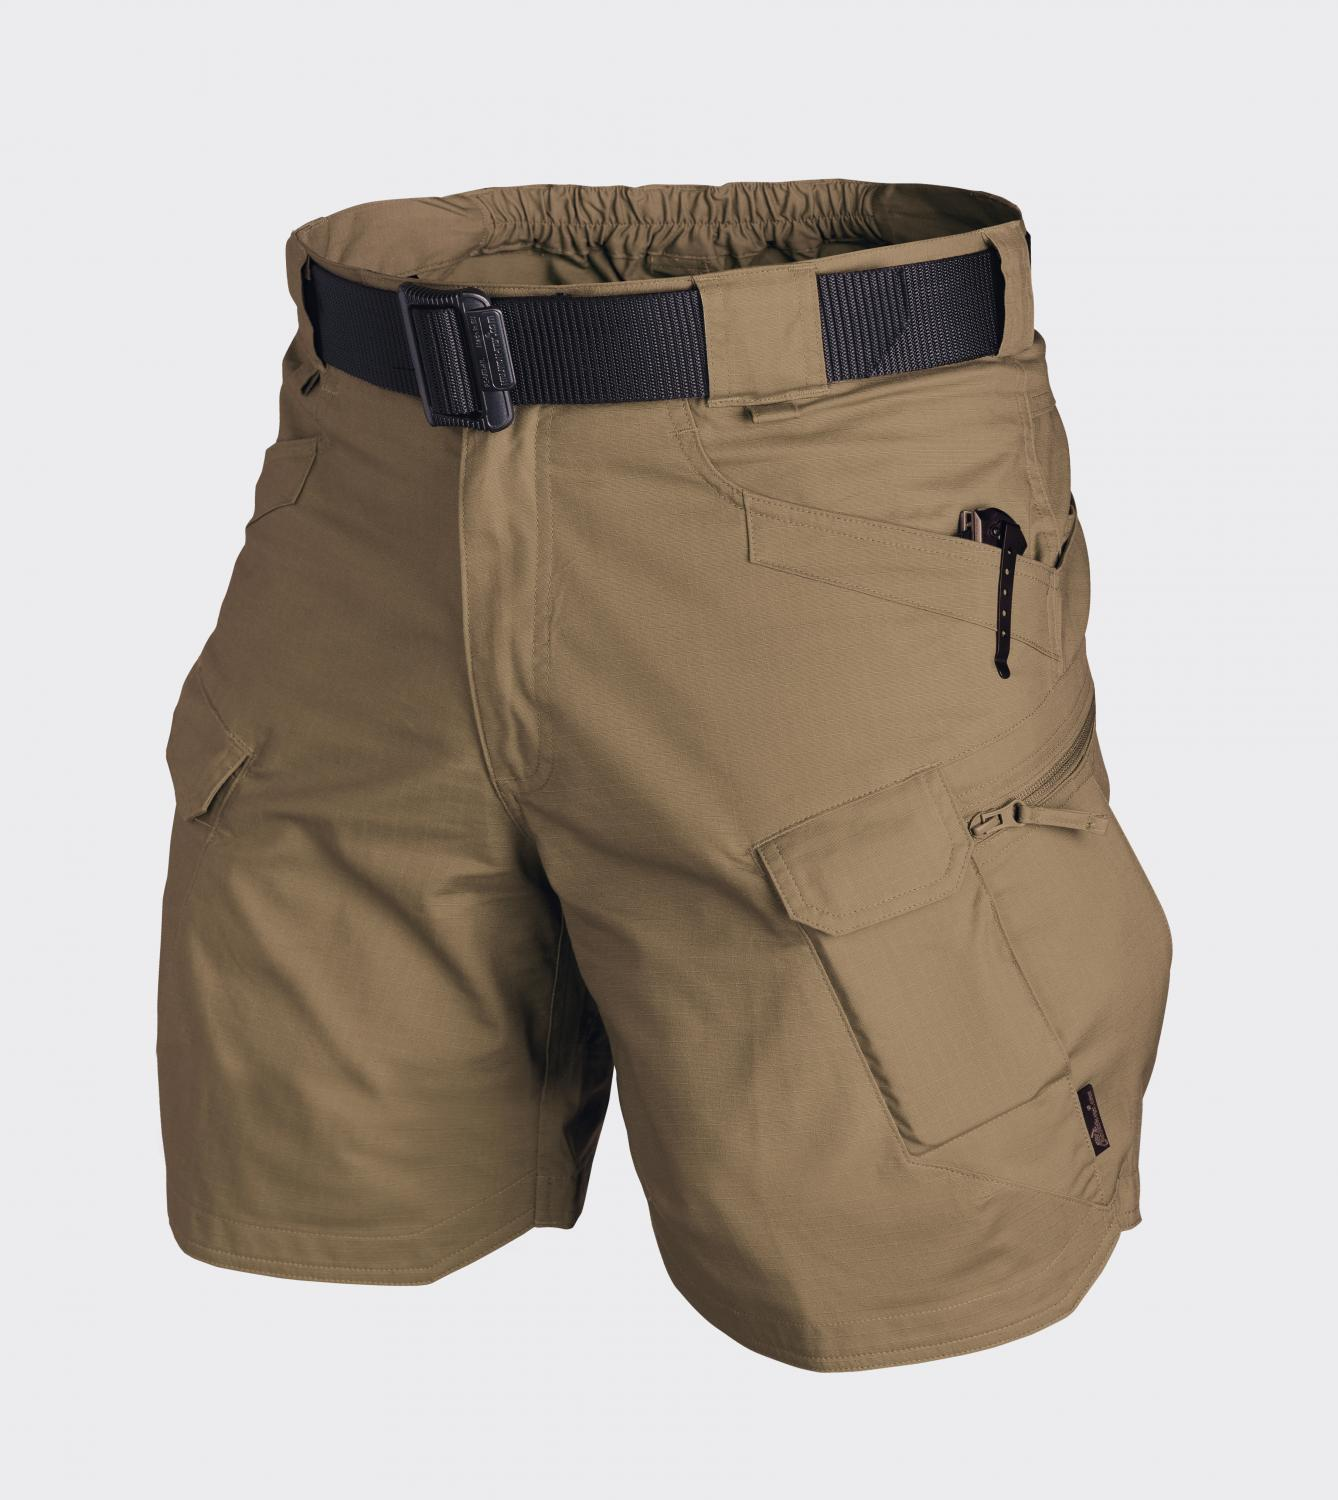 "URBAN TACTICAL SHORTS® 8.5"" - PolyCotton Ripstop Coyote"